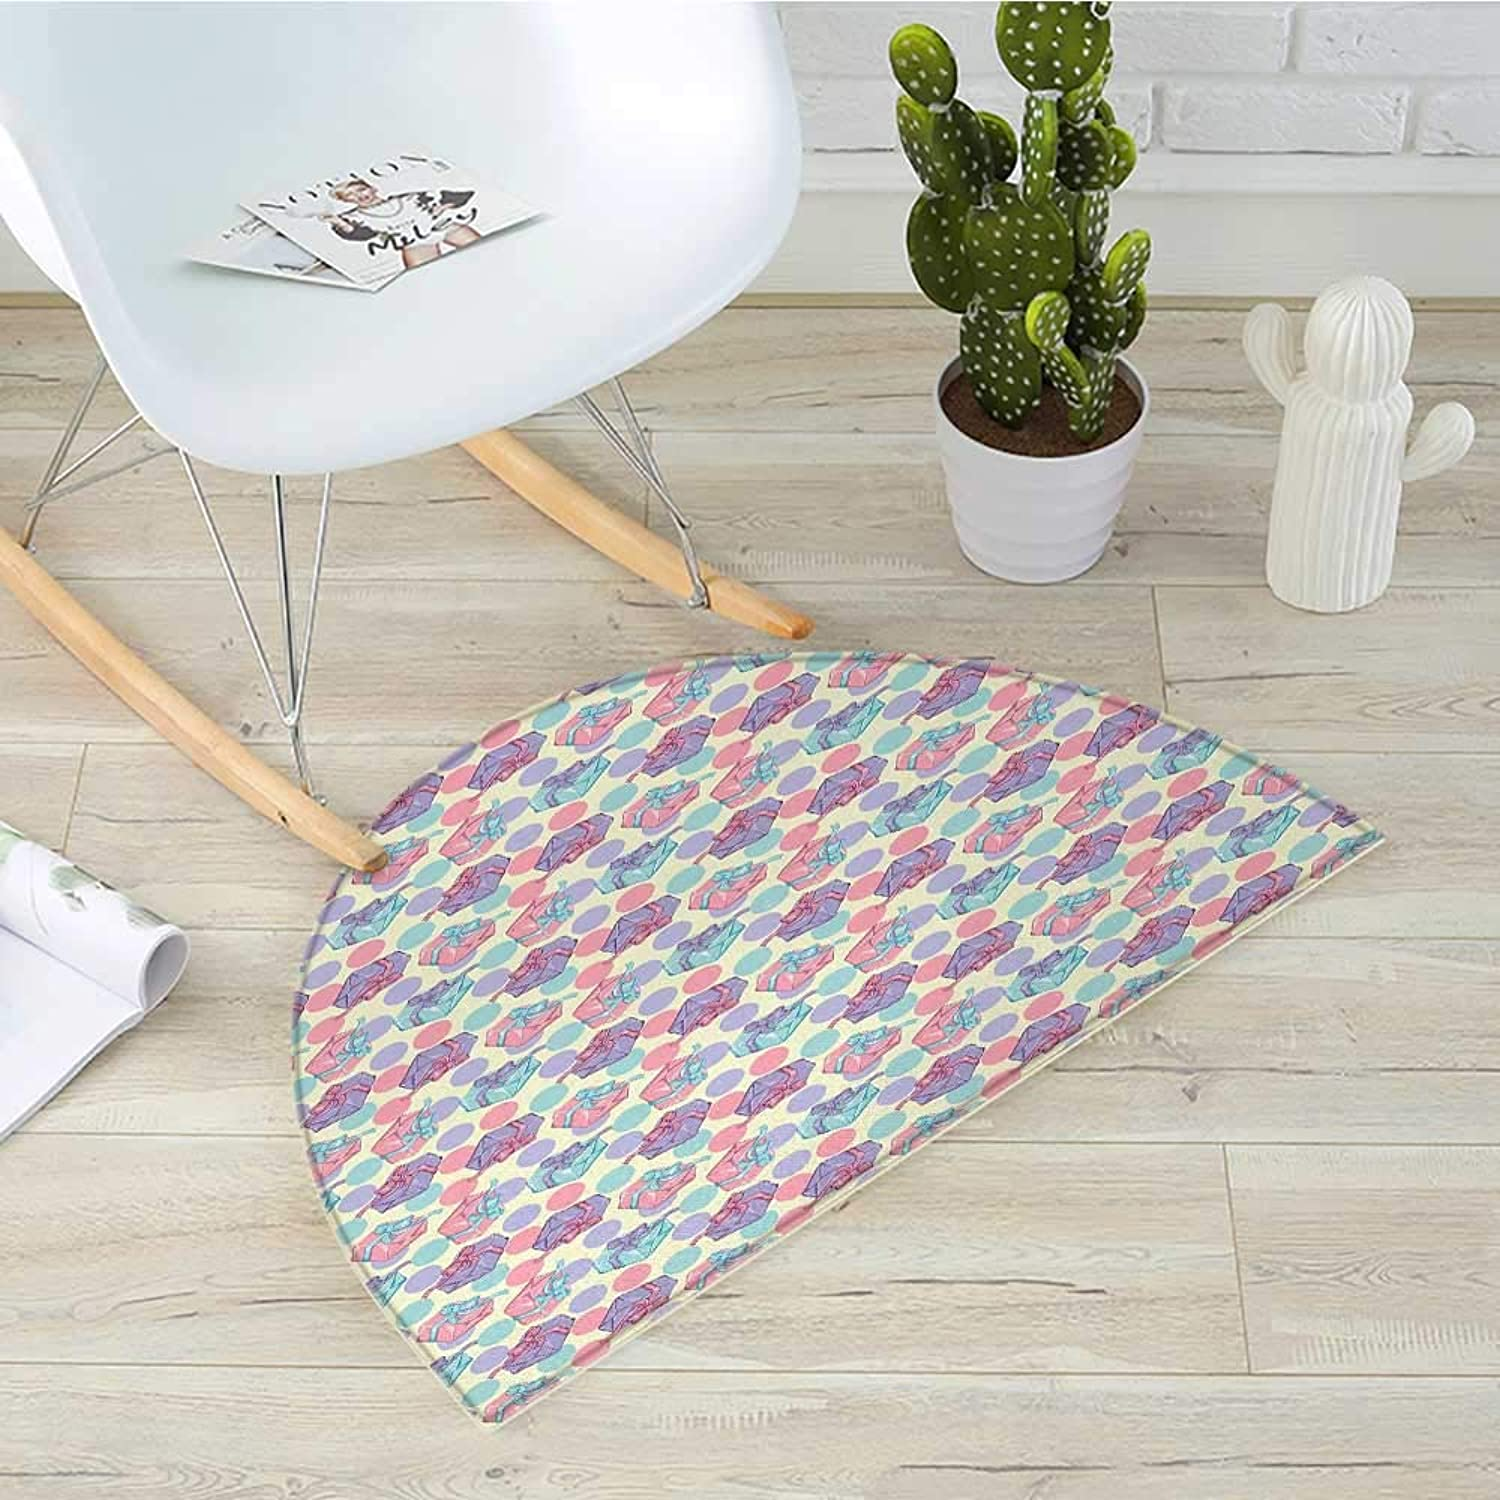 Birthday Half Round Door mats Pastel colord Big Dots and Present Boxes with Bowknots Happy Celebration Theme Bathroom Mat H 35.4  xD 53.1  Multicolor